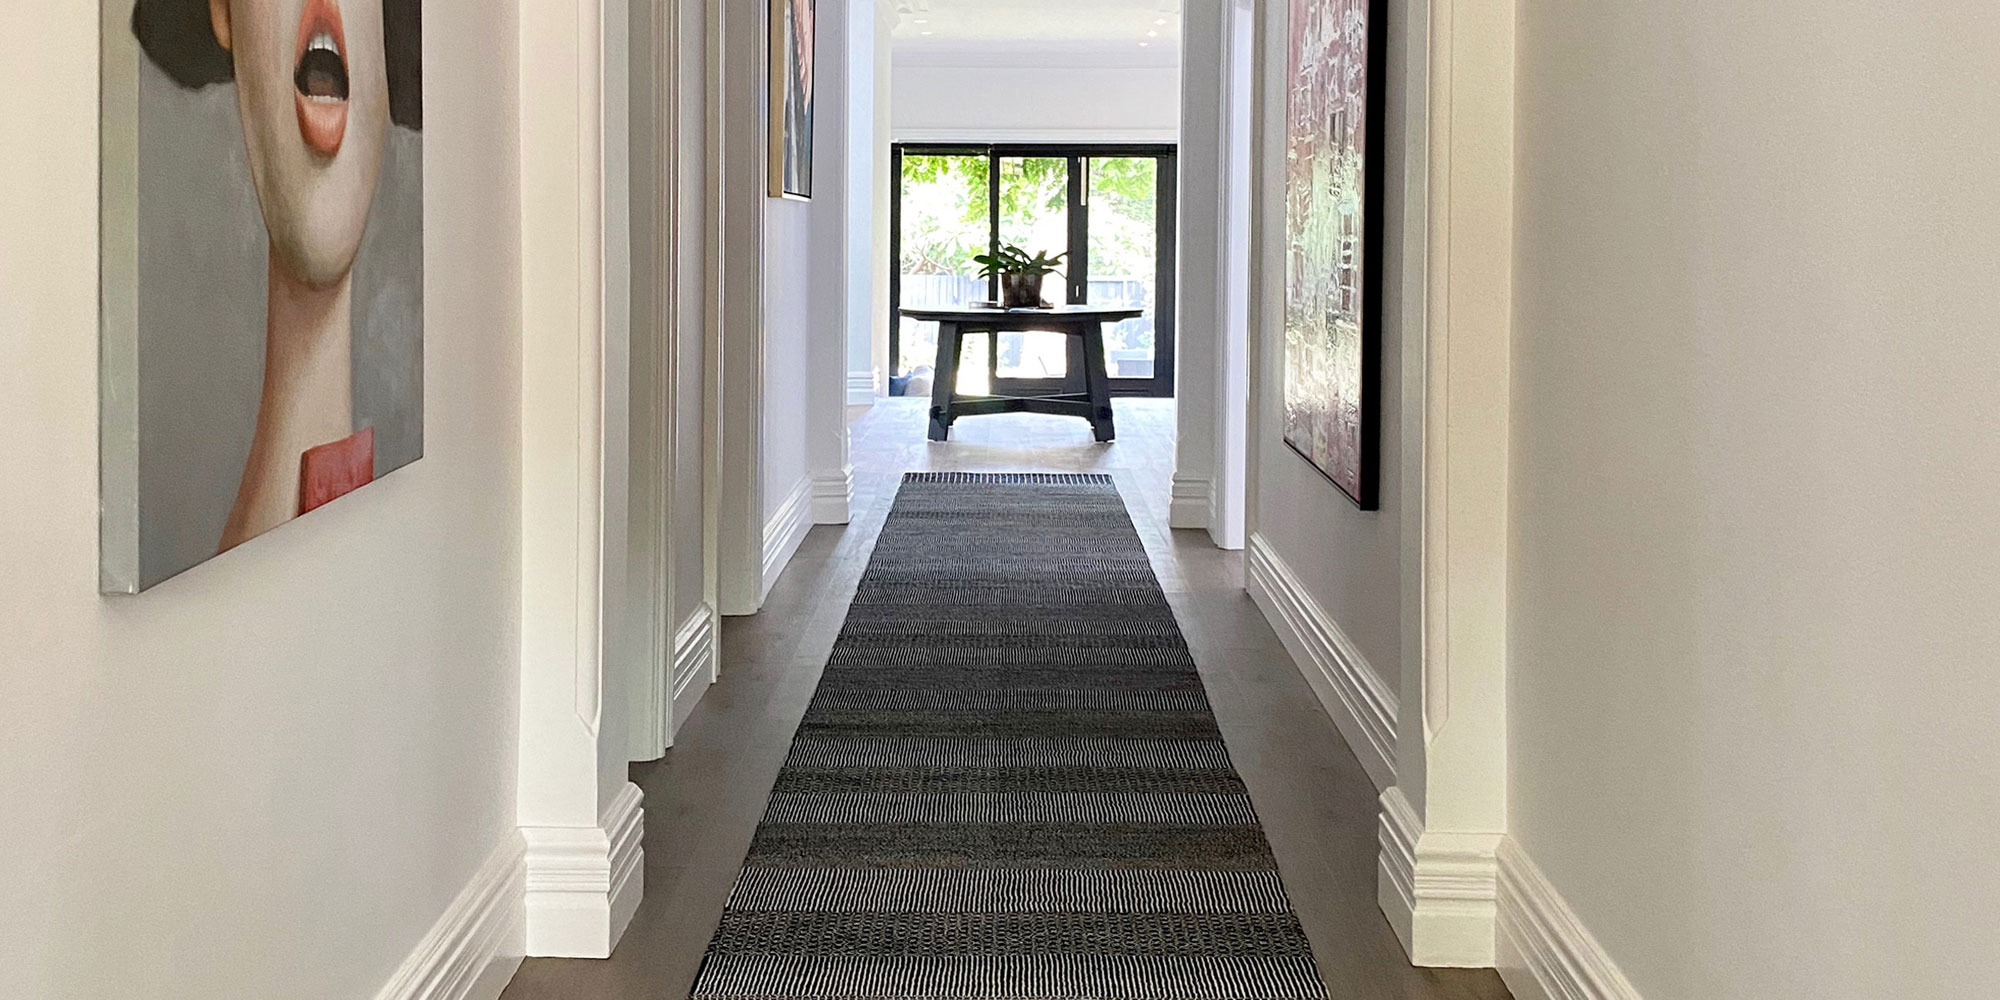 Top 10 Hall-Runner Rugs: Why Custom make your hall runners?